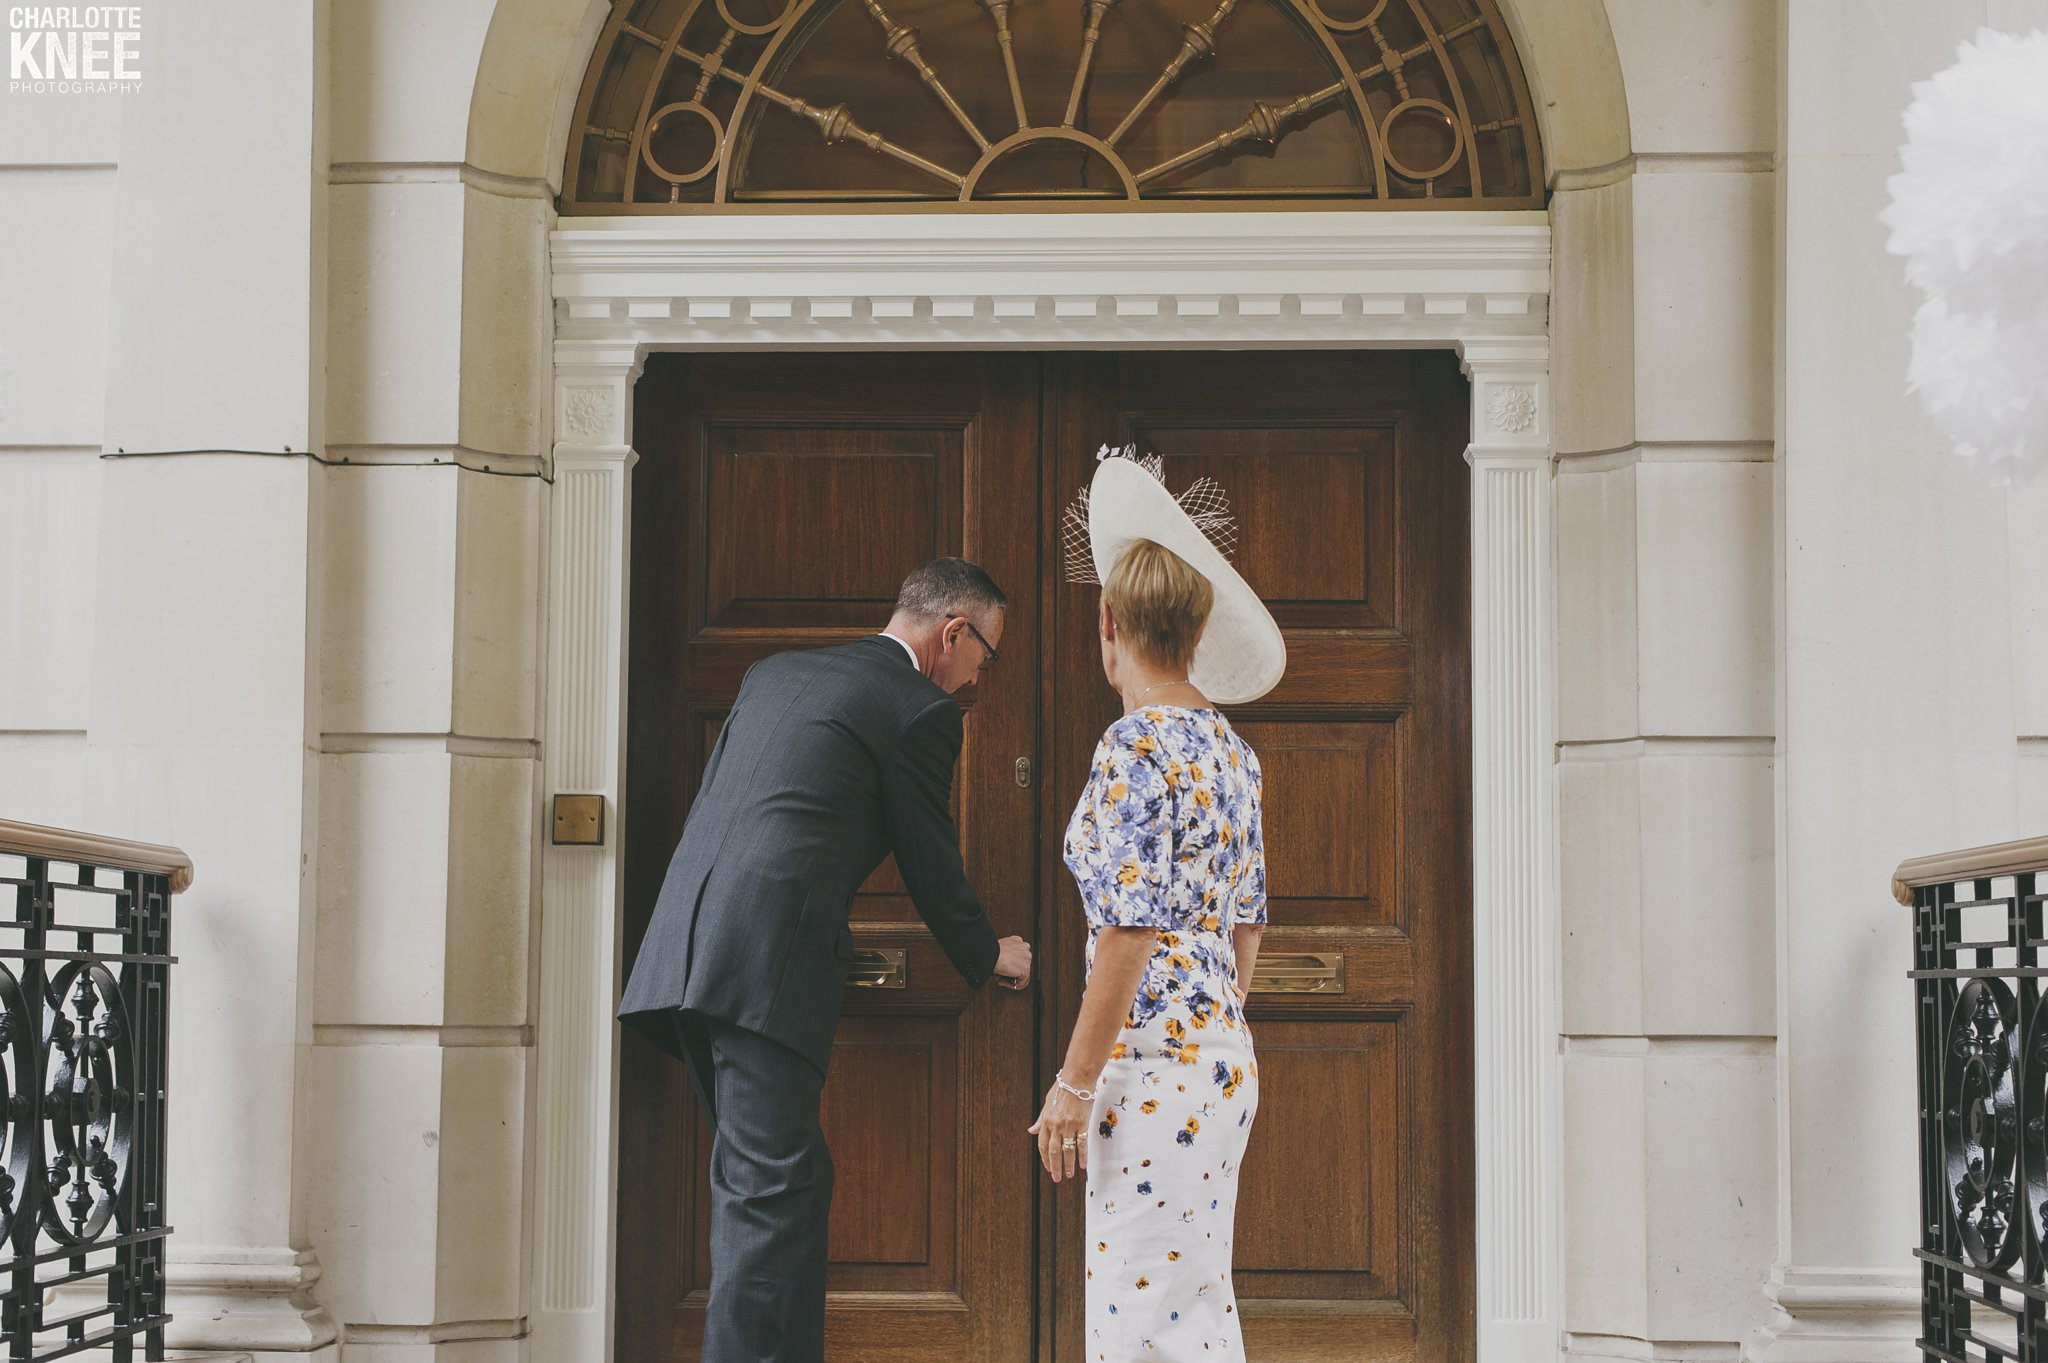 Saddlers Hall London Wedding Photography Copyright Charlotte Knee Photography_0058.jpg